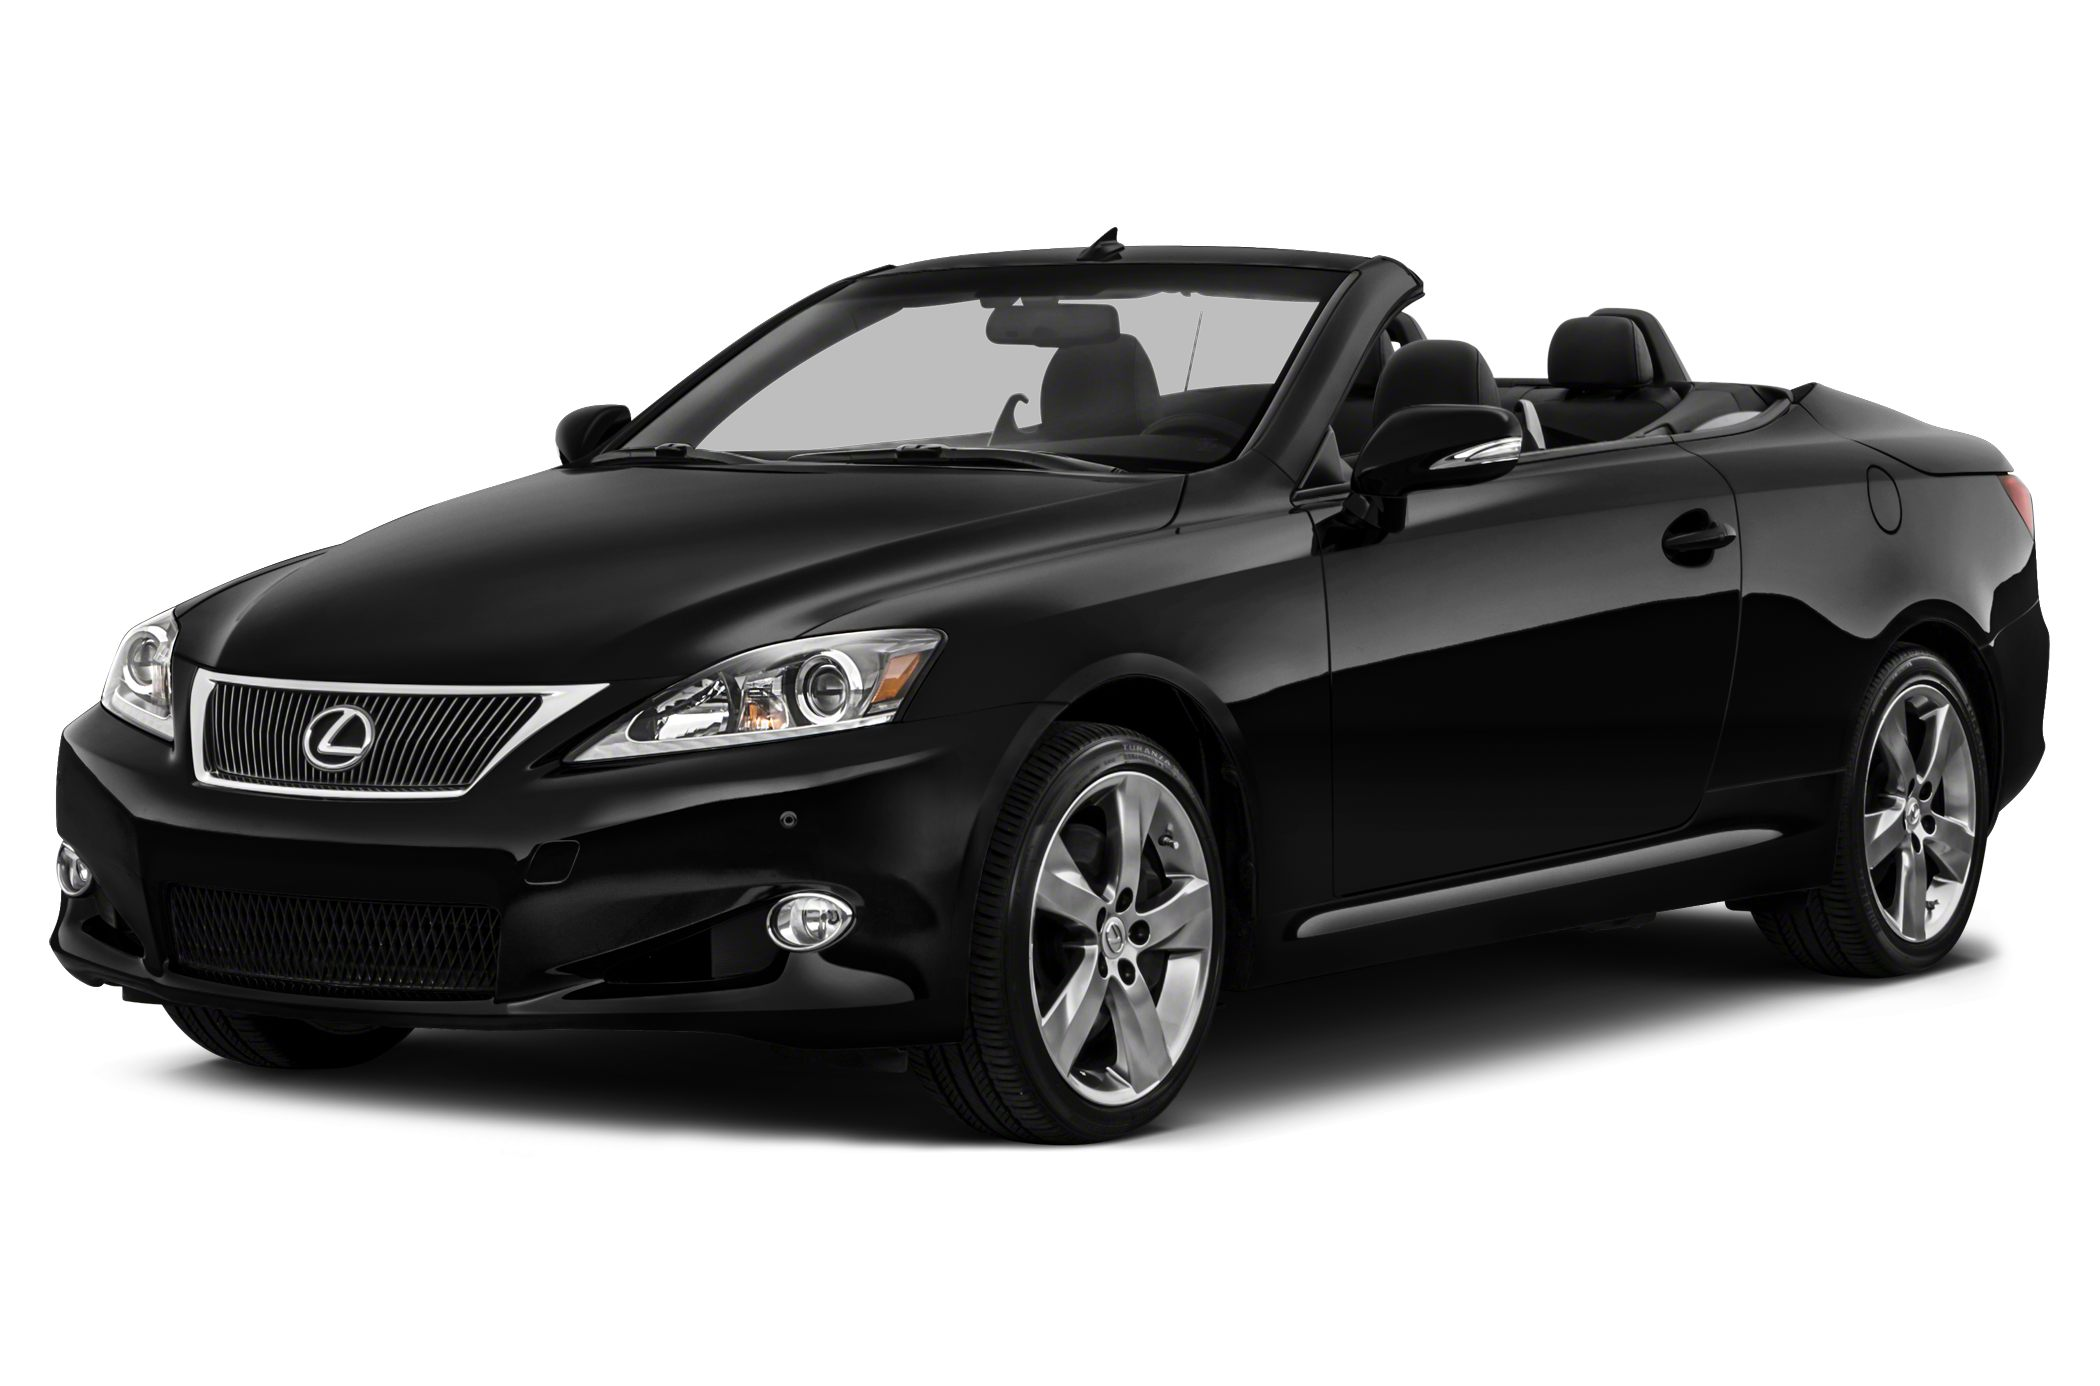 2015 Lexus IS 350C Base Convertible for sale in Carlsbad for $54,269 with 8 miles.